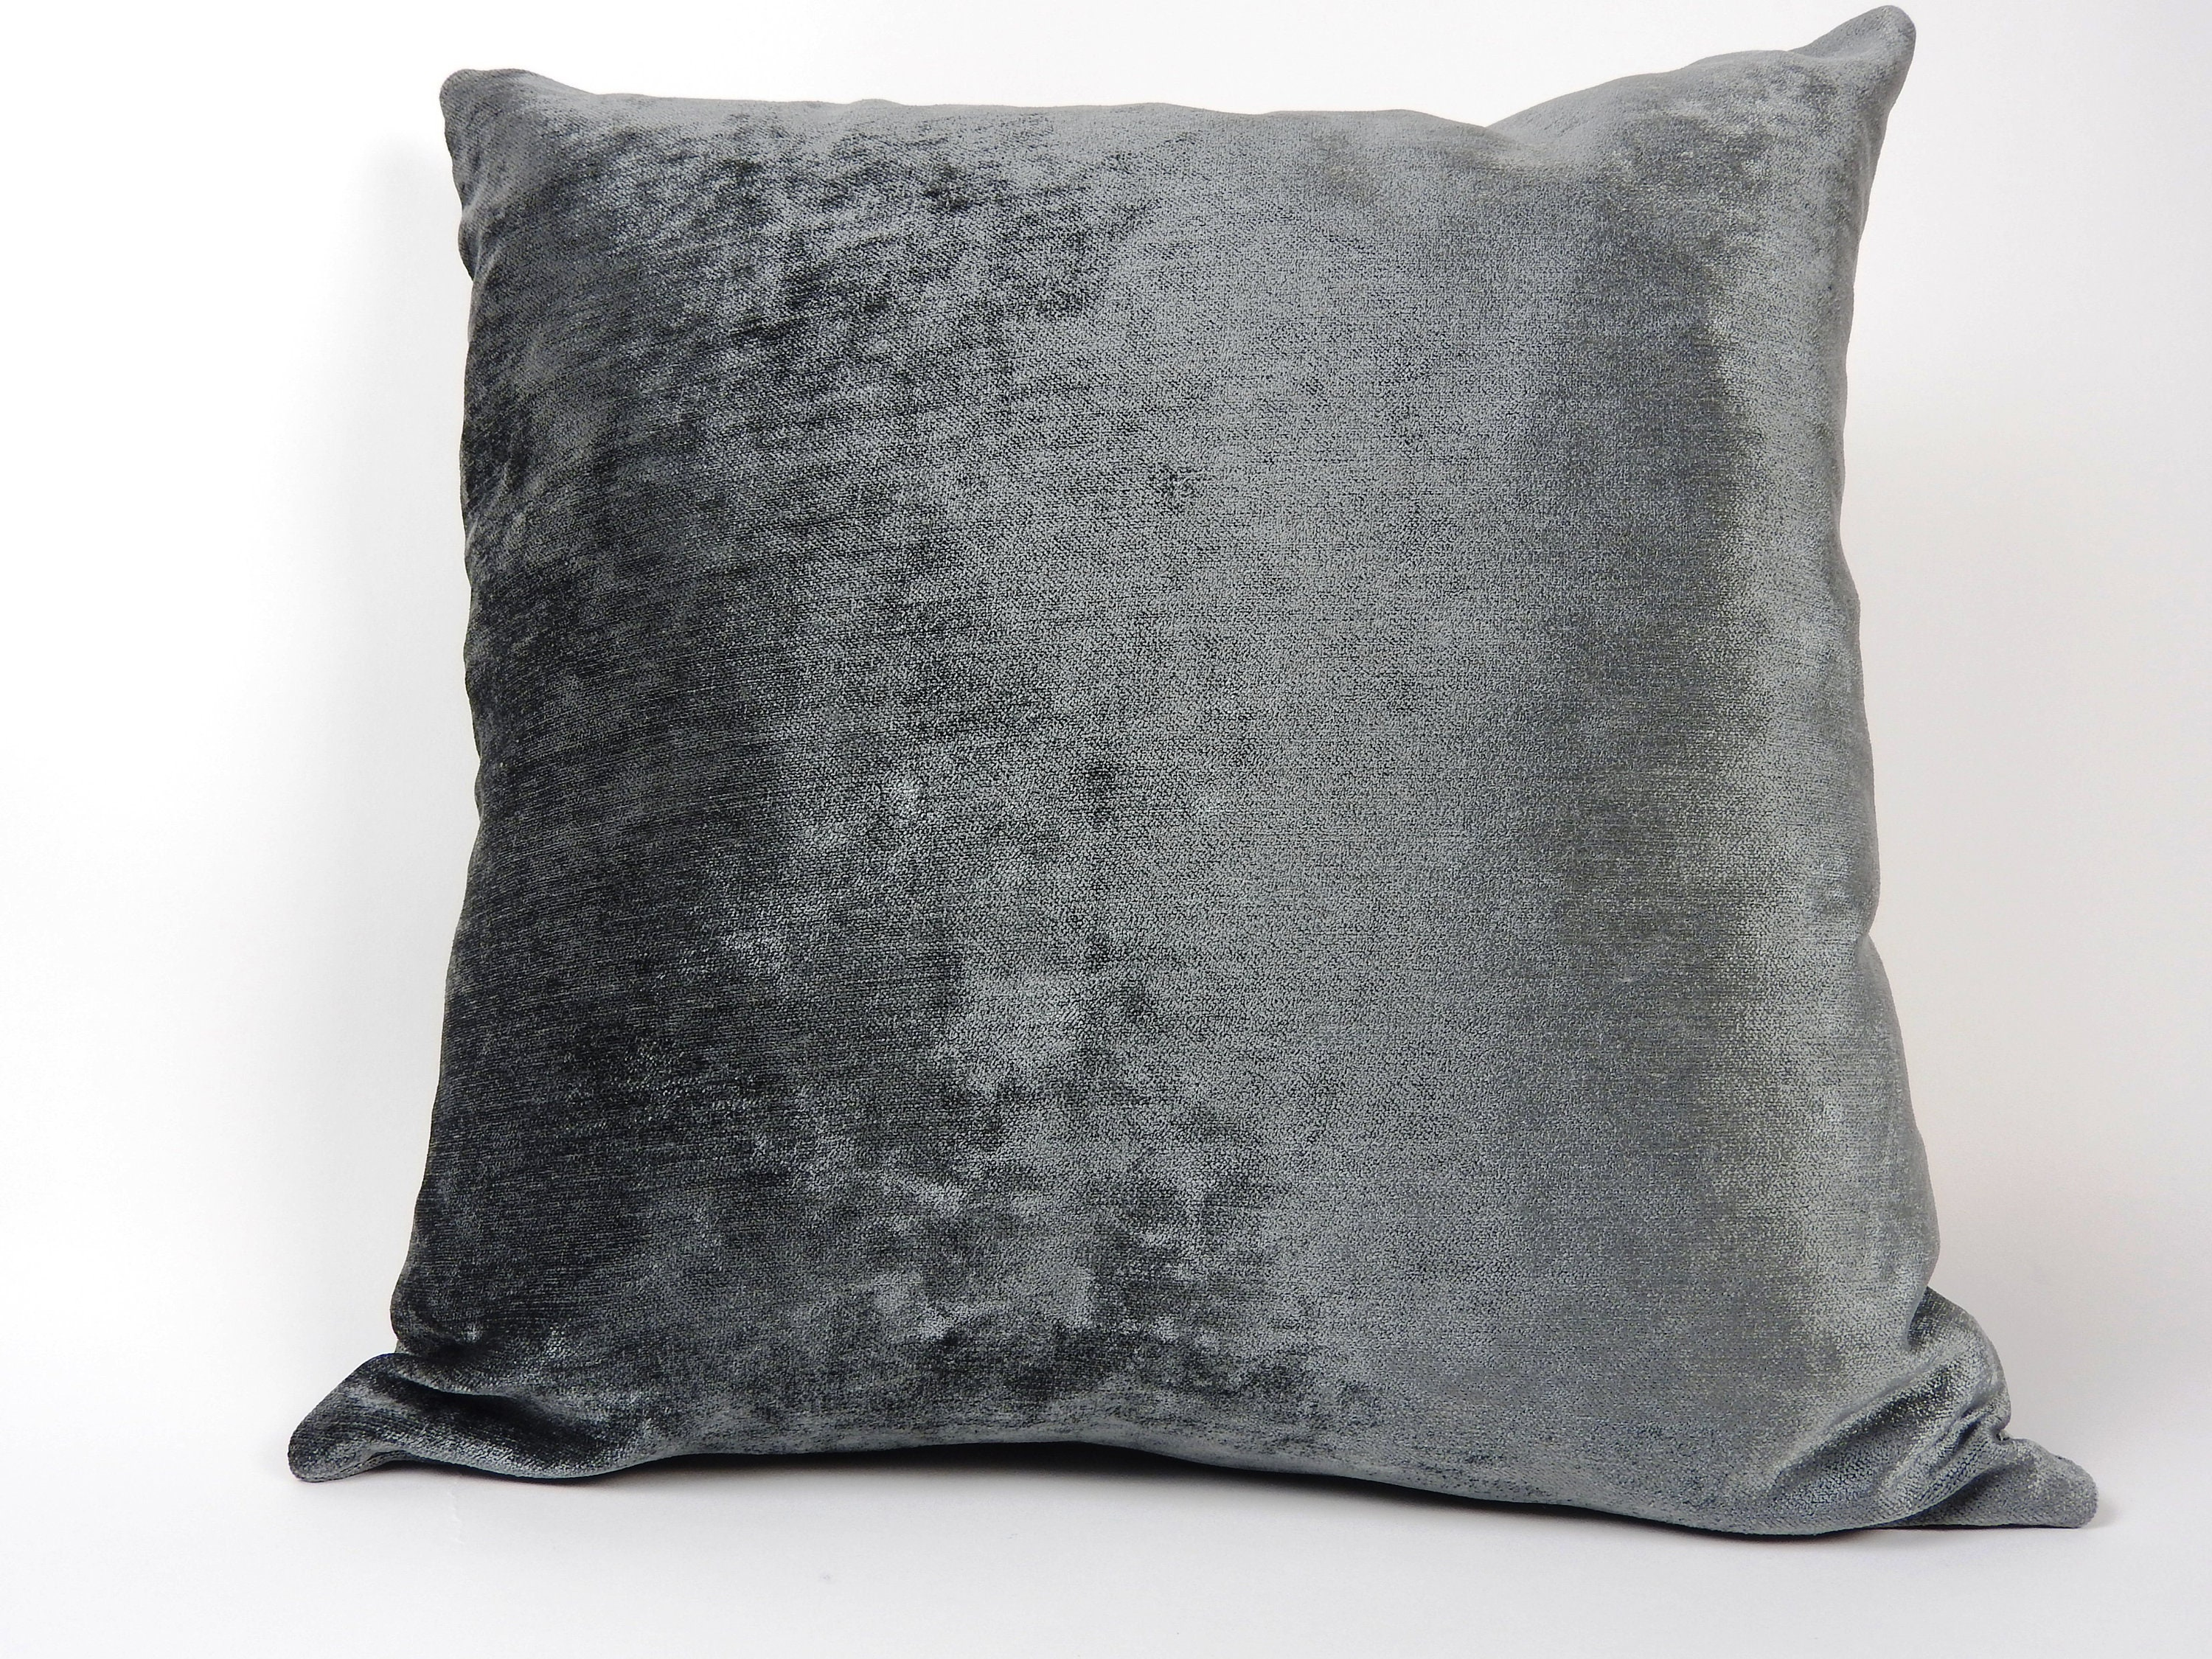 Stupendous Luxurious Charcoal Gray Velvet Throw Pillow Cover Solid Color And Plush Velvet Mix With Other Pillows To Add A Modern Touch To Any Room Bralicious Painted Fabric Chair Ideas Braliciousco